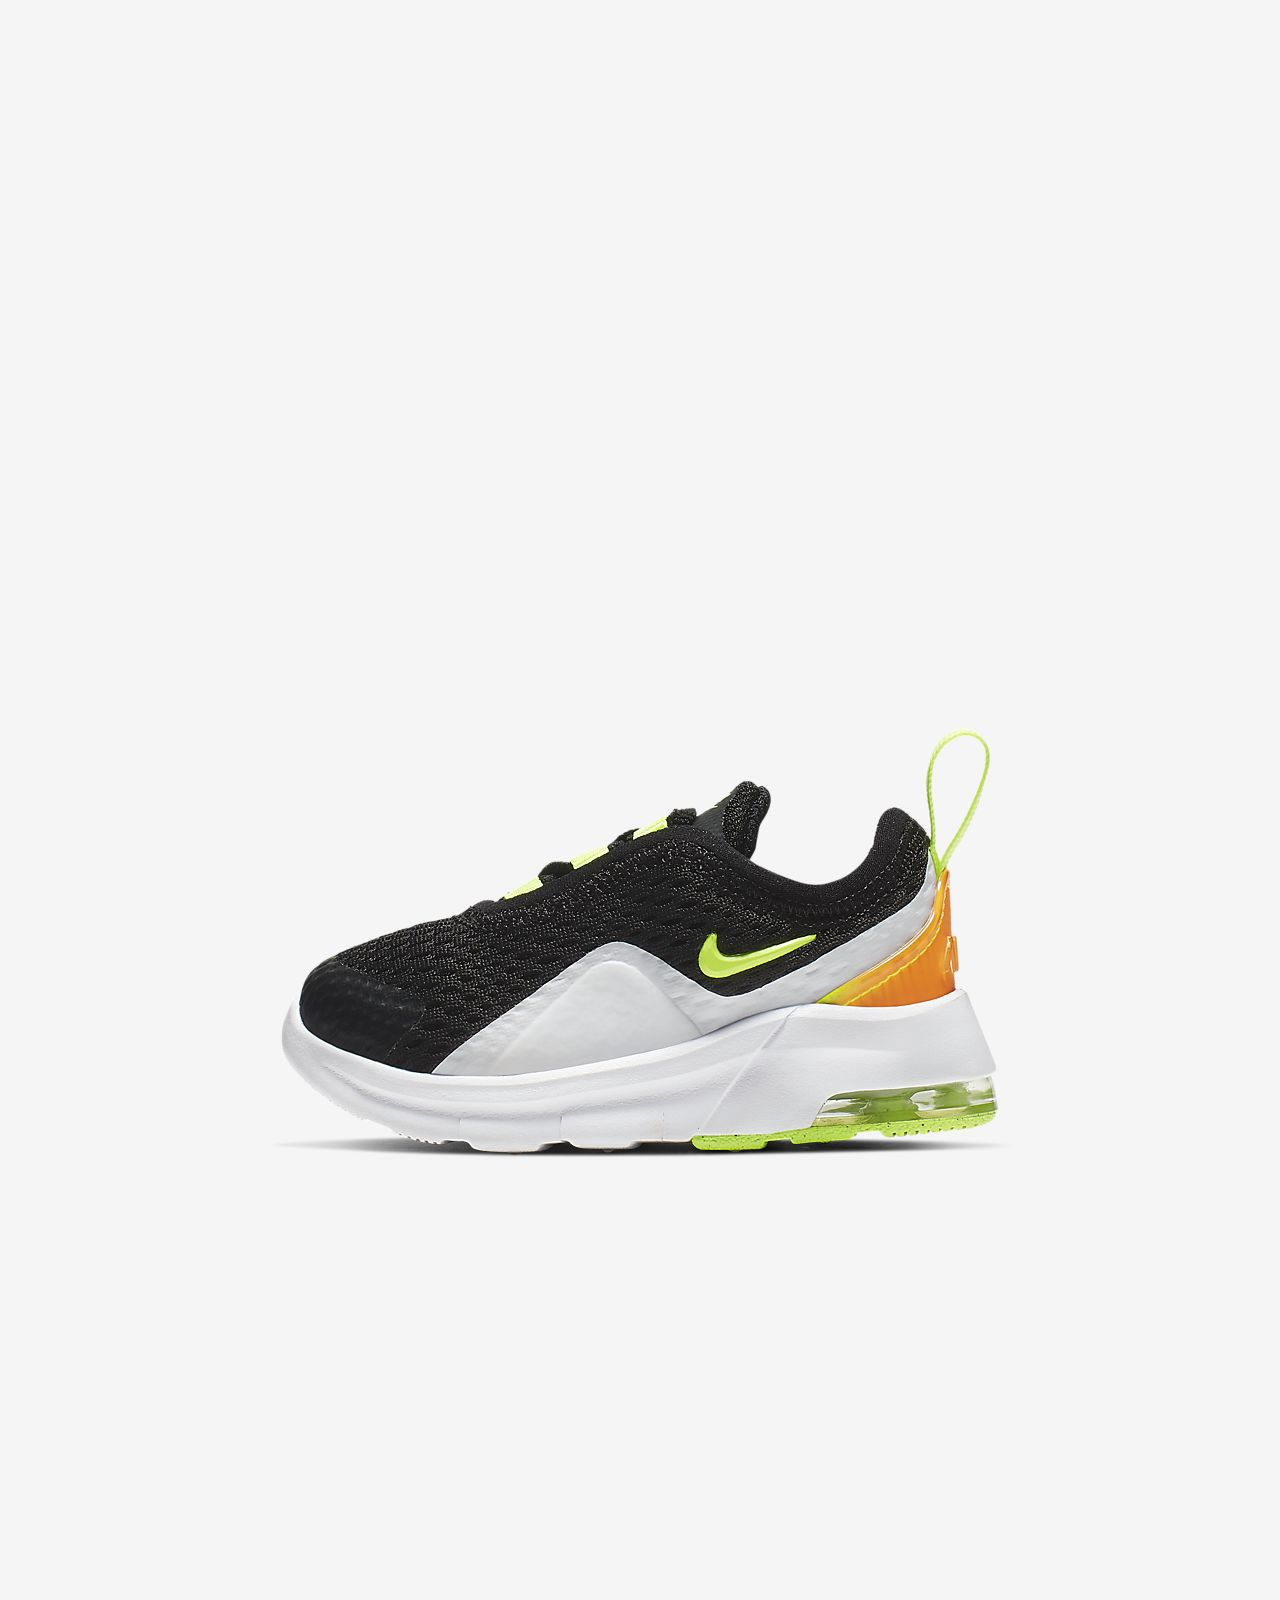 0a9a81d83e Nike Air Max Motion 2 Baby/Toddler Shoe. Nike.com